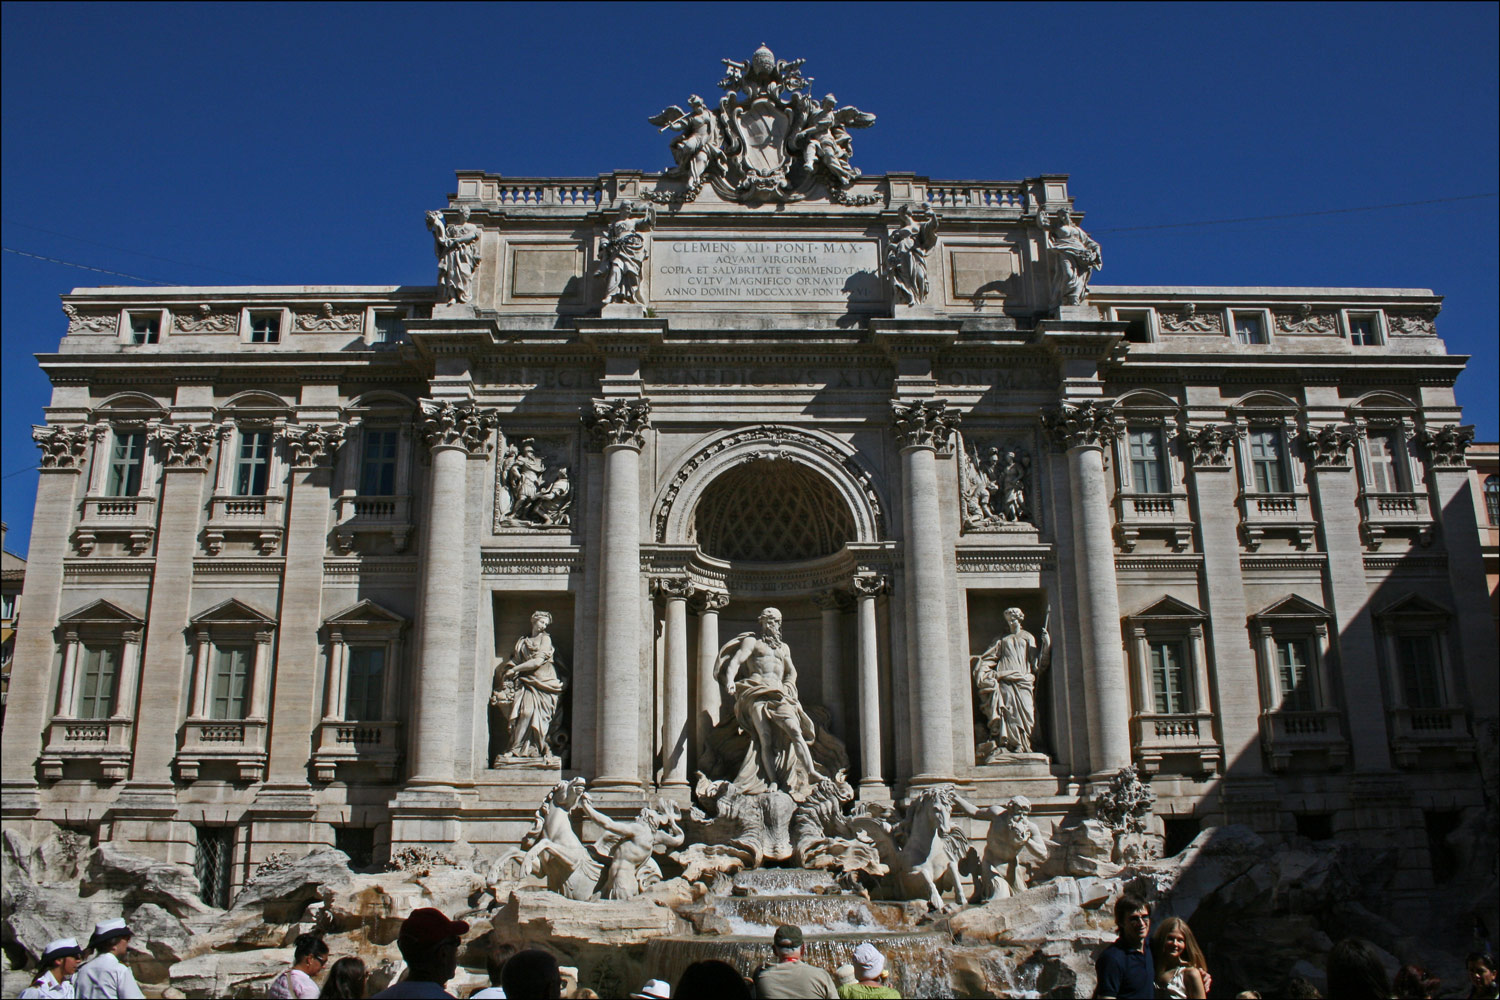 The Trevi Fountain and the Palazzo Poli